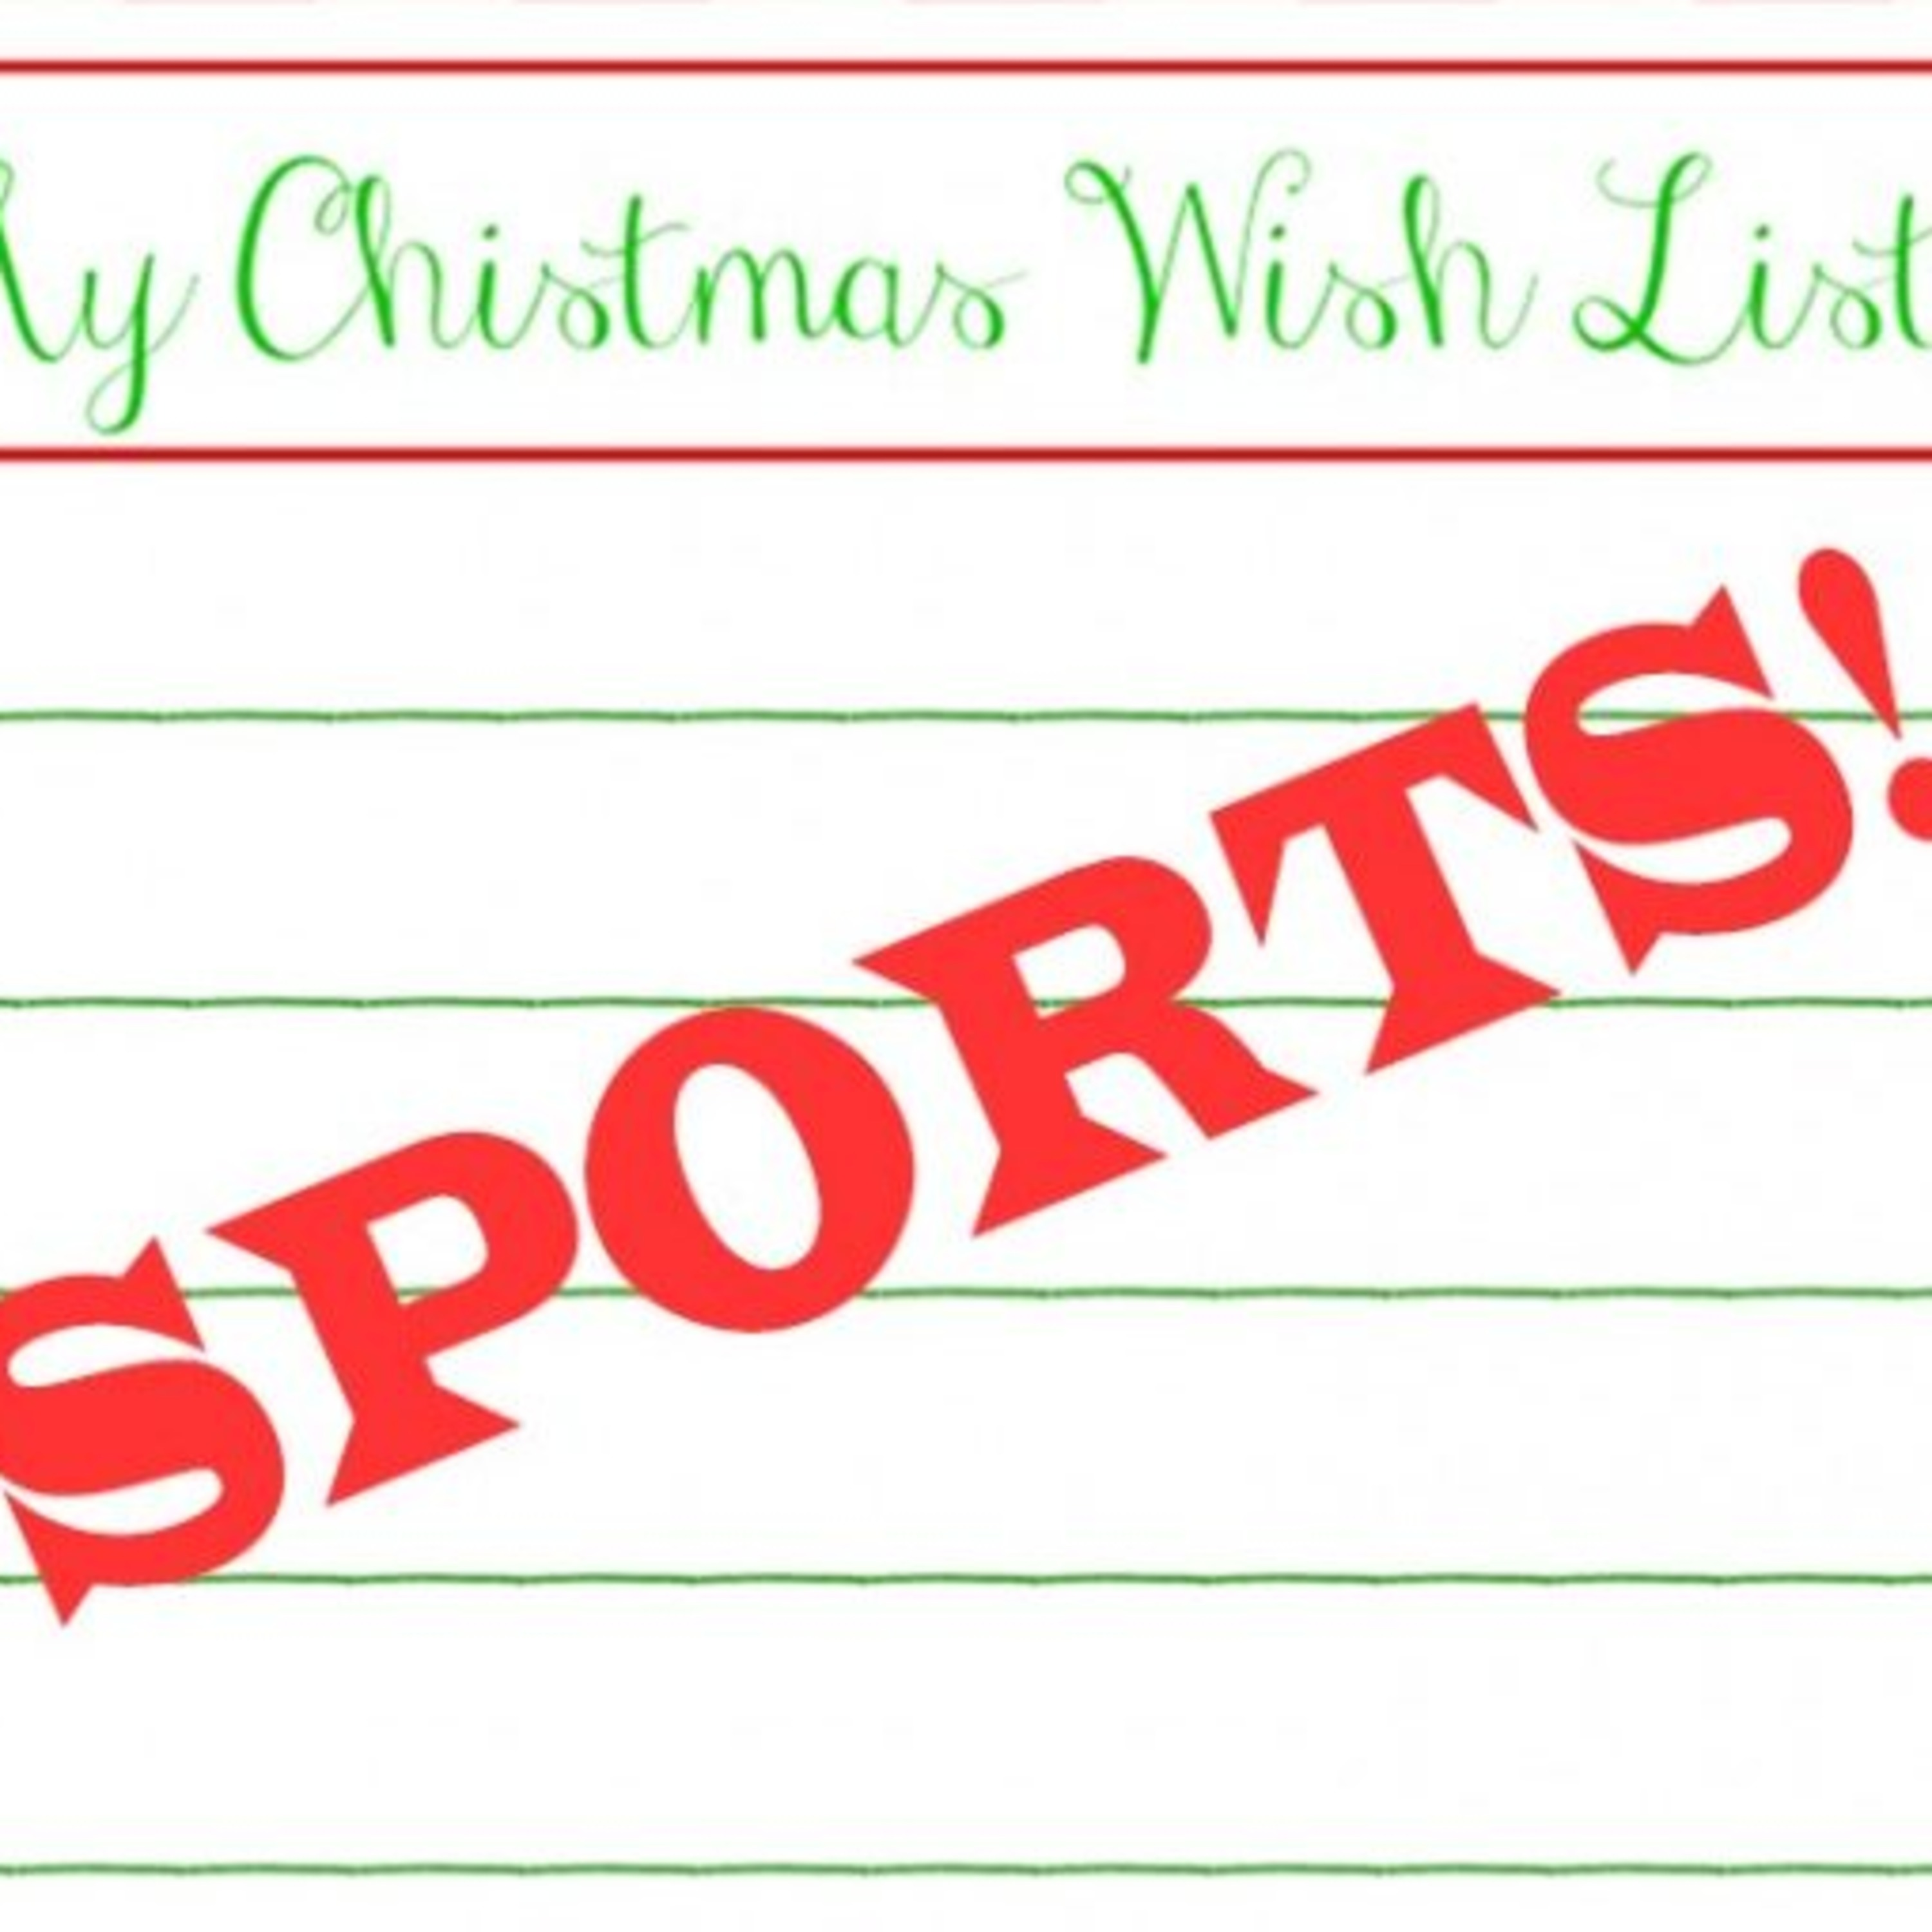 Episode 40 - Detroit Sports Christmas Wish Lists for 2020